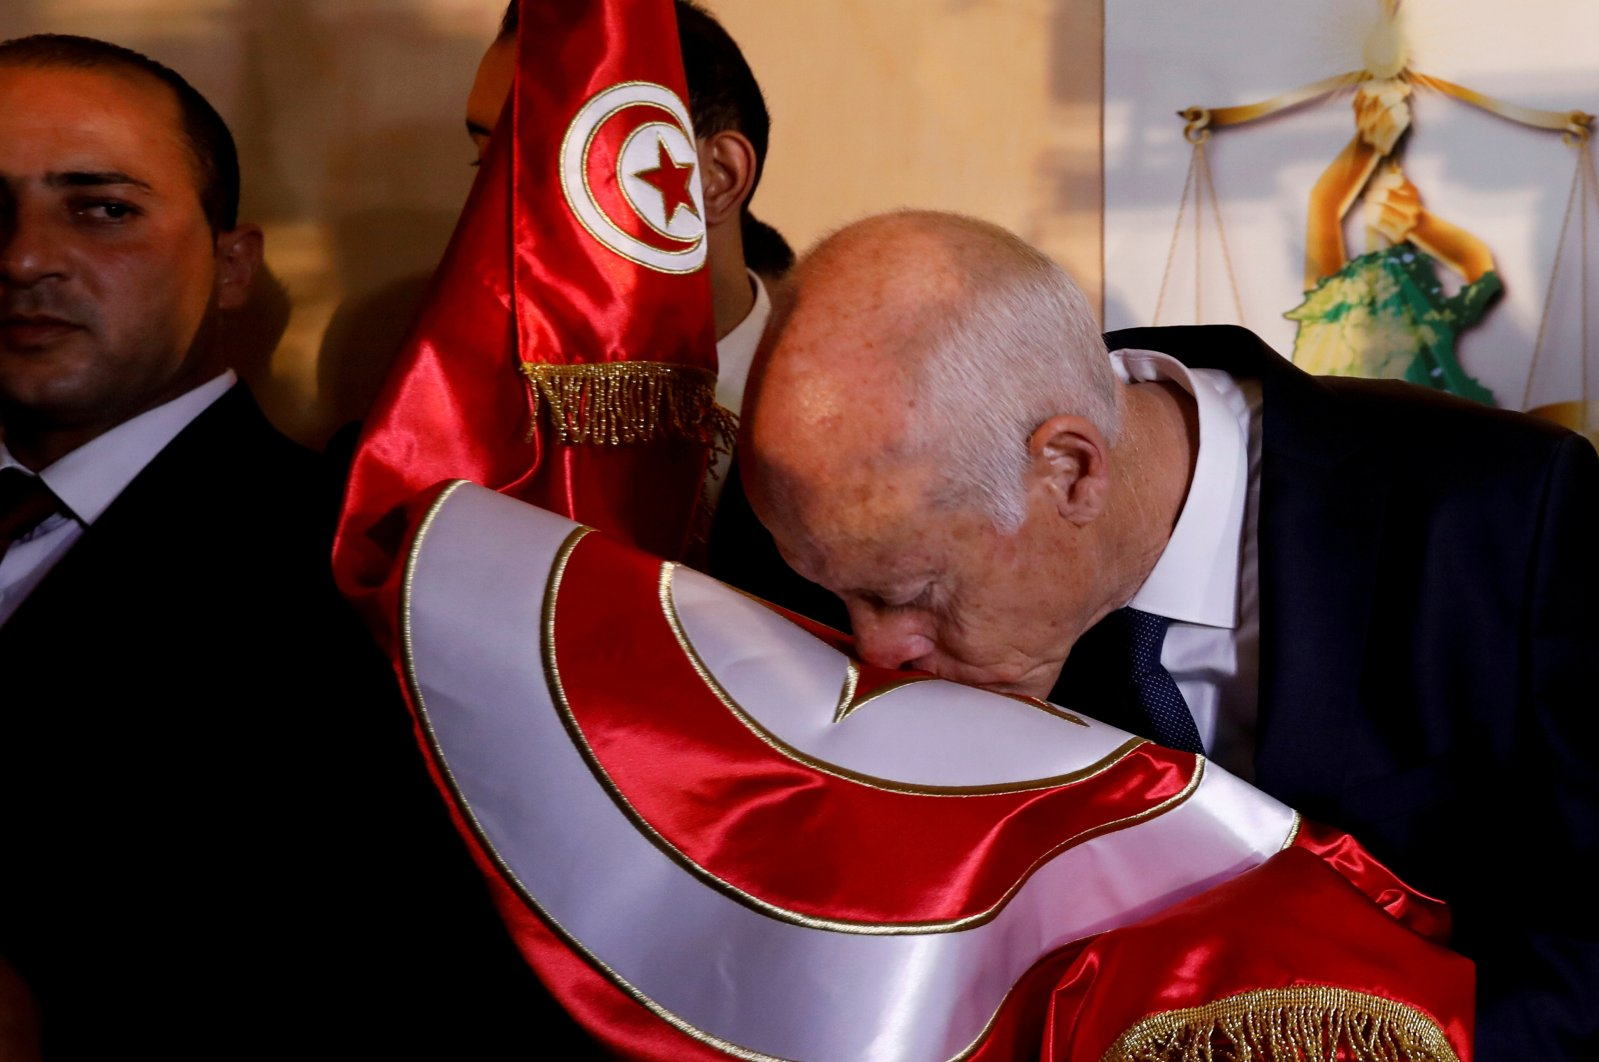 Tunisian President Kais Saied reacts after exit poll results were announced in a second round runoff of the presidential election in Tunis, Tunisia, Oct. 13, 2019. (REUTERS Photo)